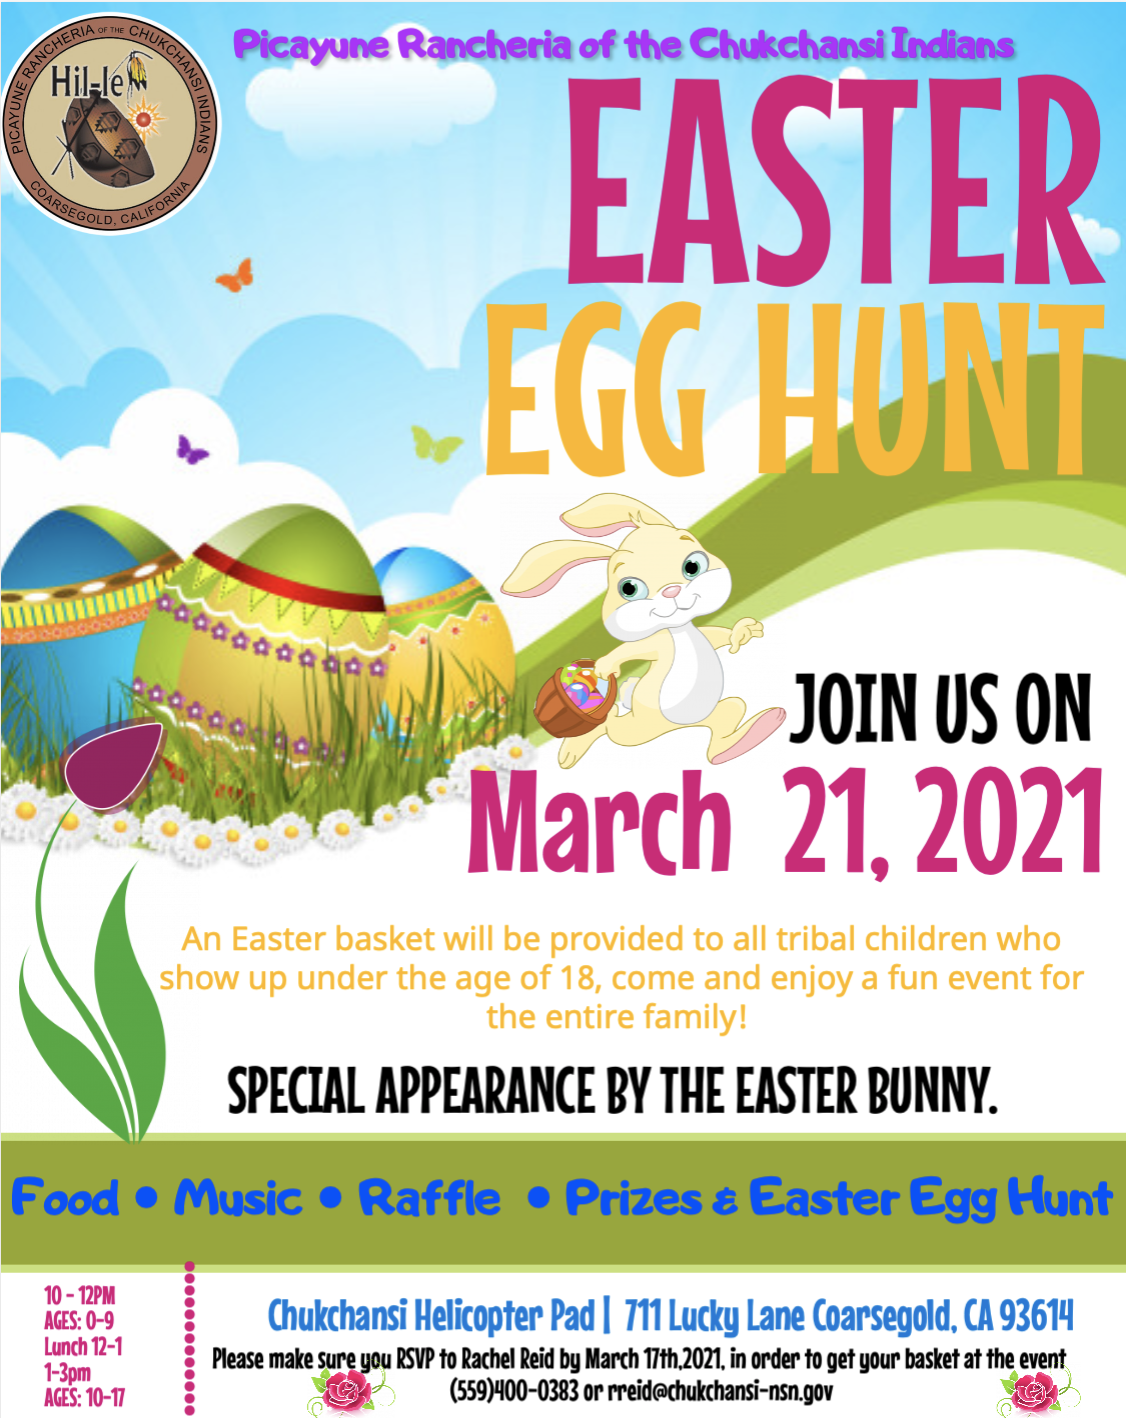 PRCI Easter Egg Hunt @ Chukchansi Helicopter Pad